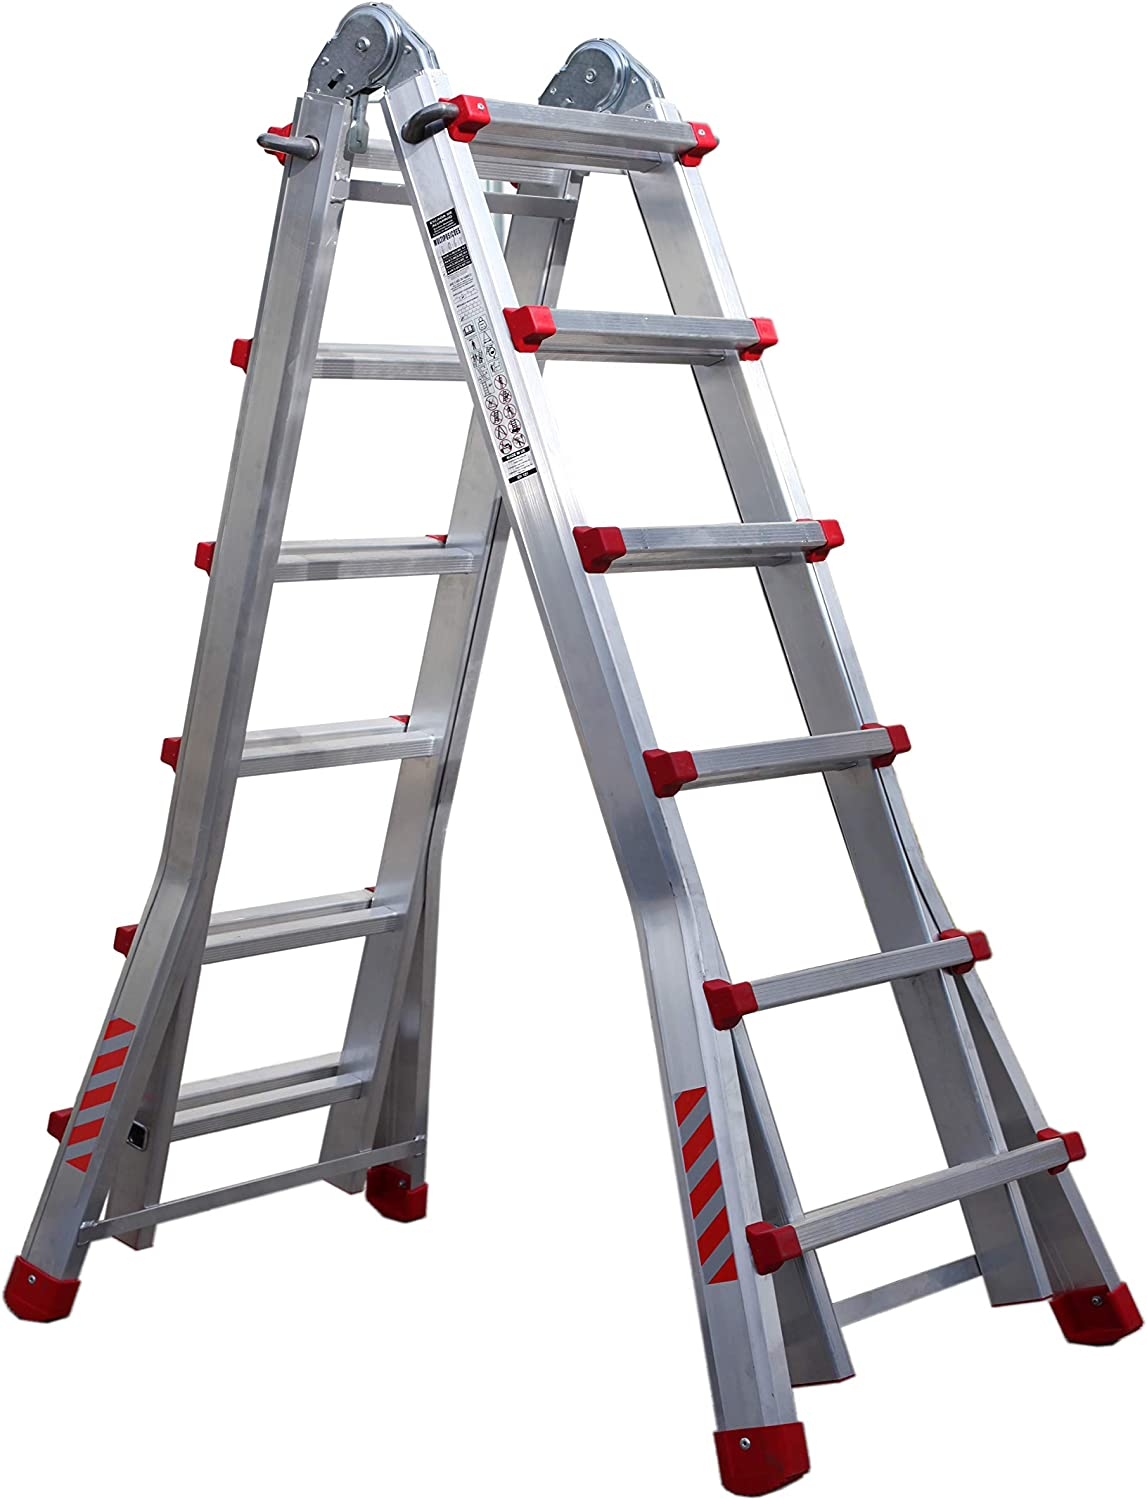 Articulated Aluminum Telescopic Professional Folding Ladder 6+5 in 2 Stages. Up to 22 Steps